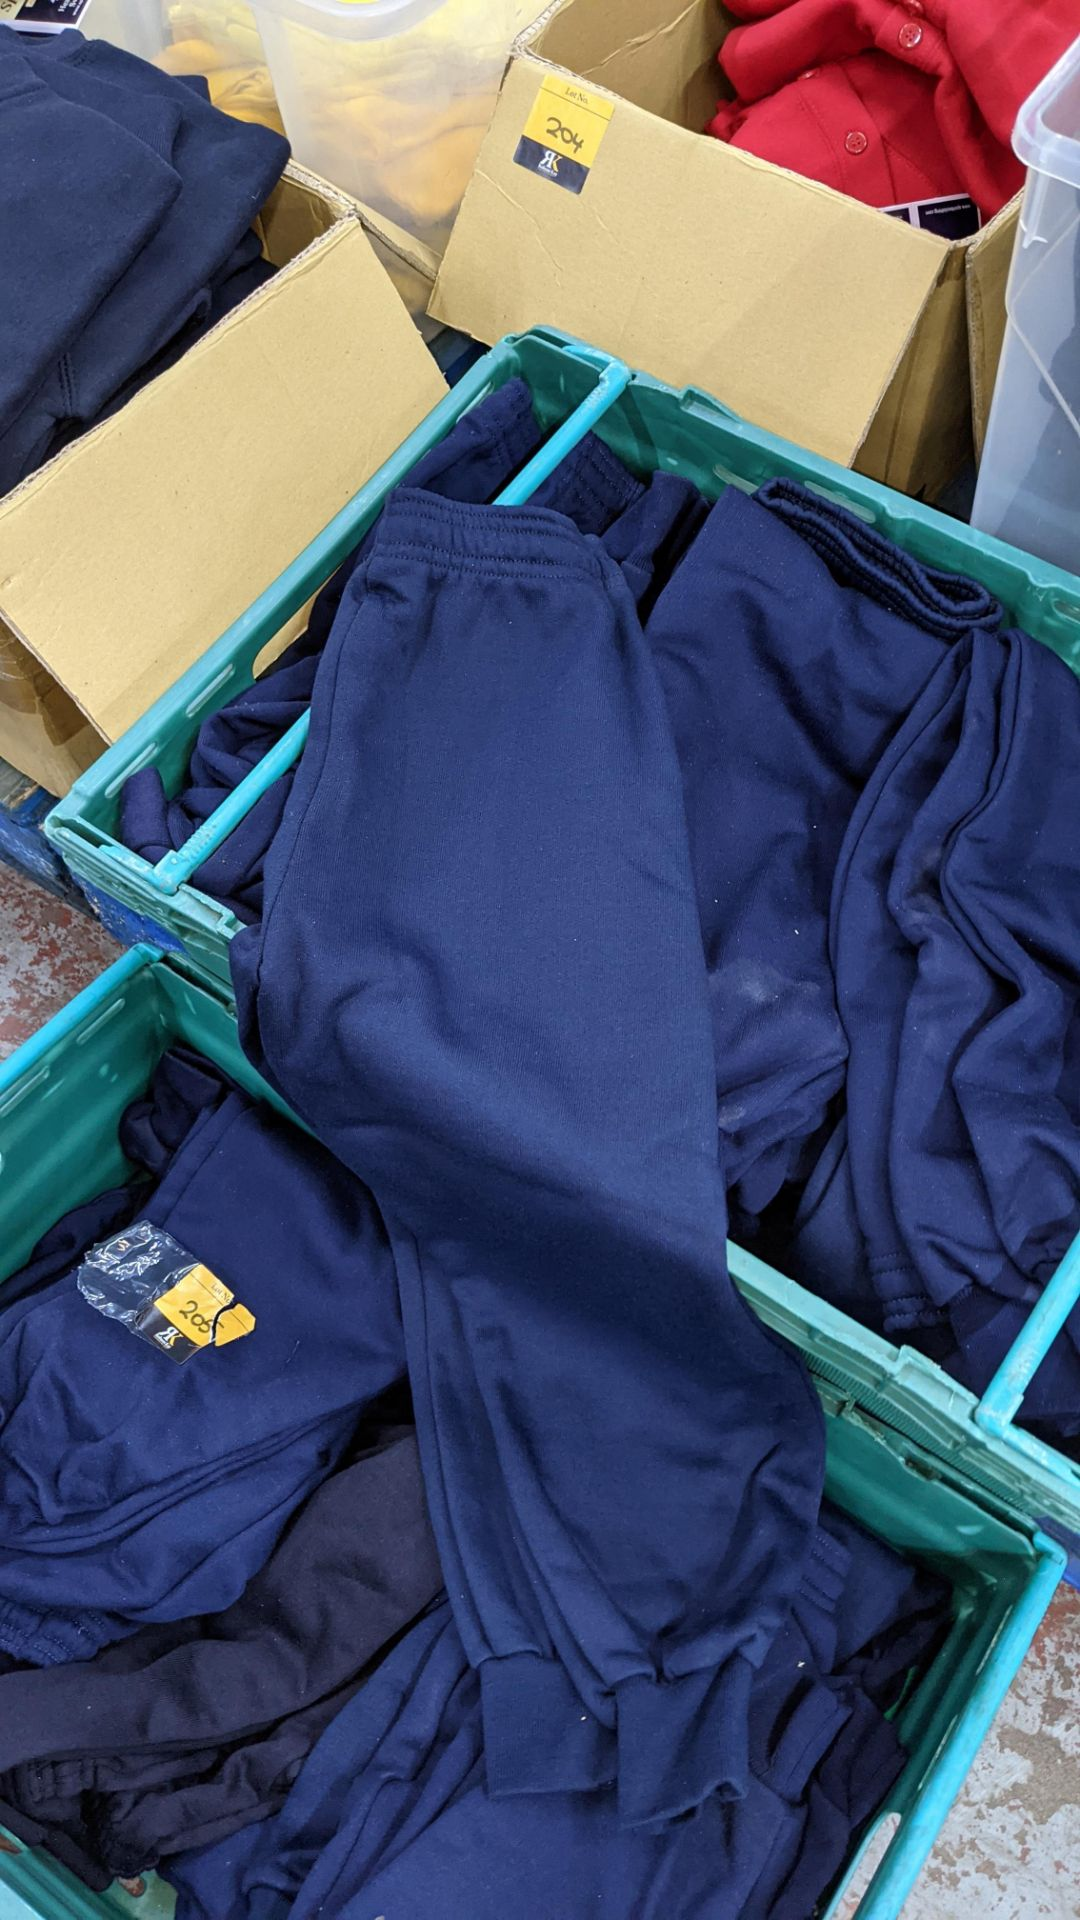 Approx 17 off children's blue tracksuit bottoms in assorted styles - the contents of 2 crates. NB c - Image 5 of 5